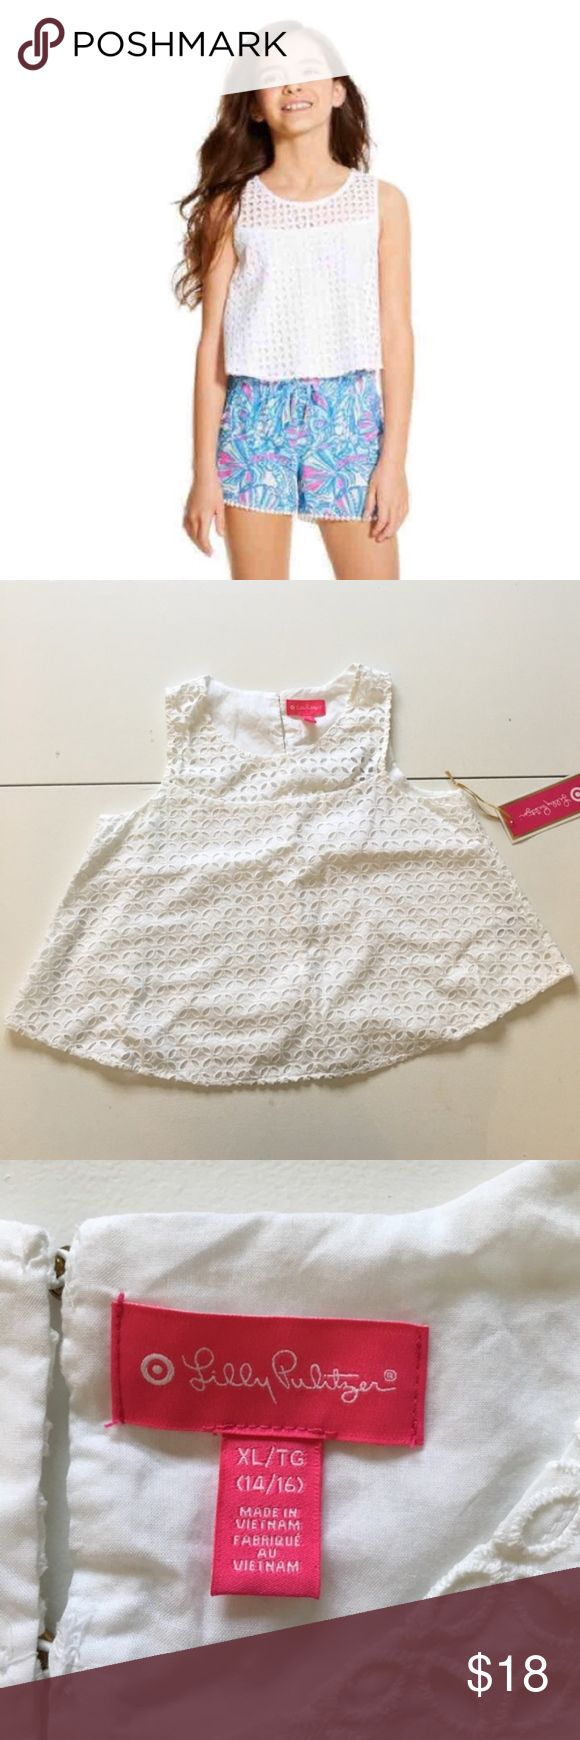 NEW Lilly Pulitzer XL Girls Crochet Top White Brand new with tags. Size XL.  Price is firm. Lilly Pulitzer for Target Shirts & Tops Blouses